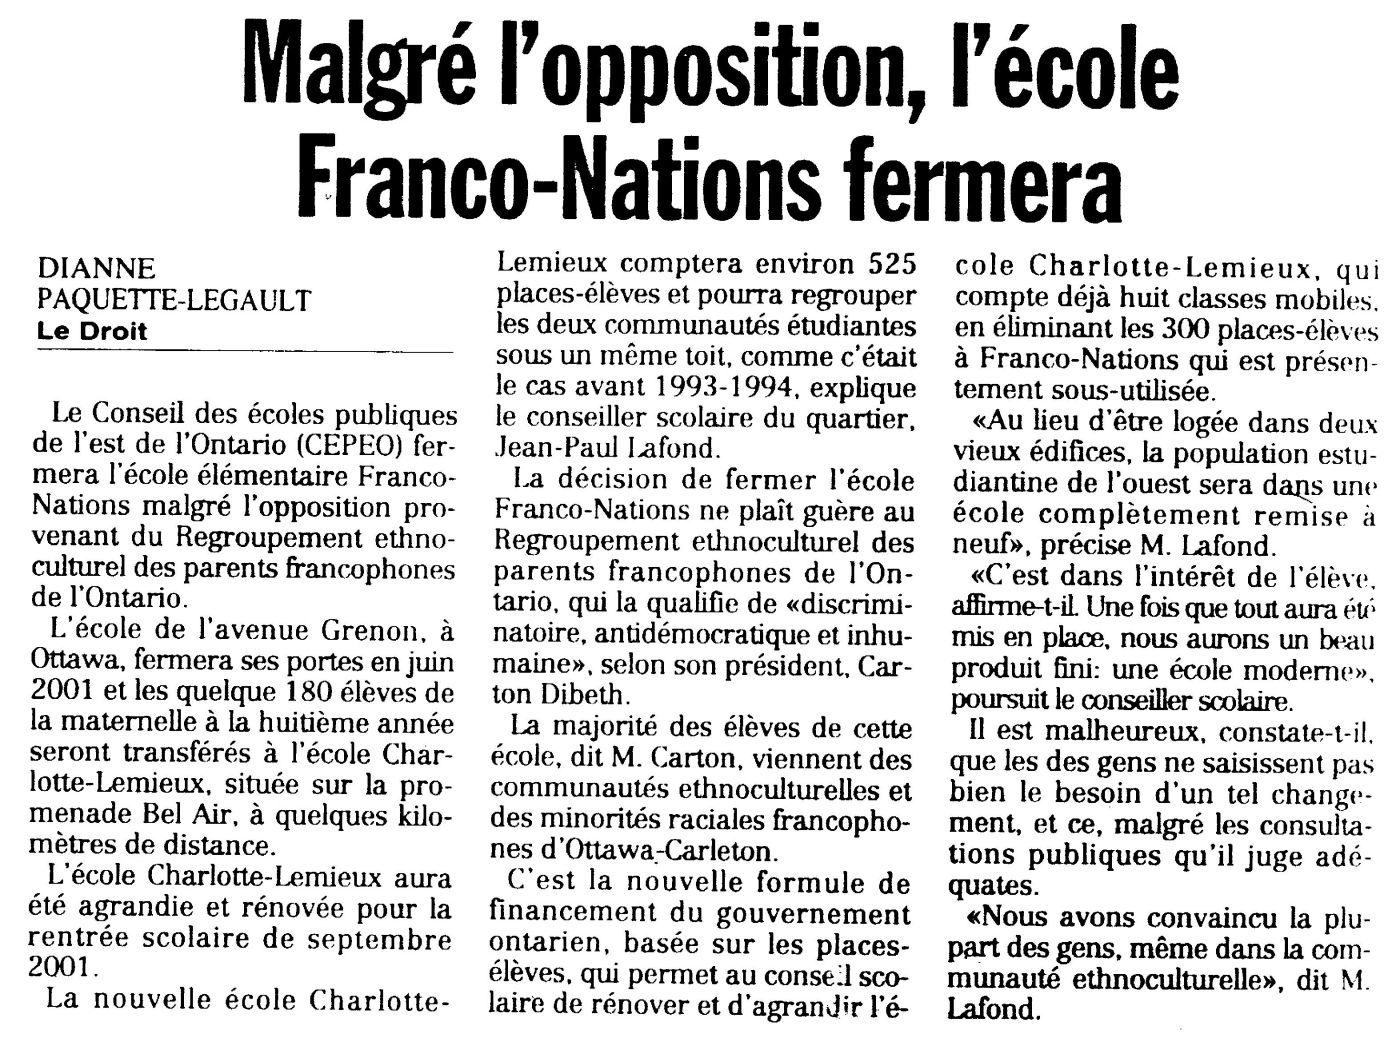 French newspaper article. The title appears in bold at the top of the page. The article is printed in three columns. It is signed.